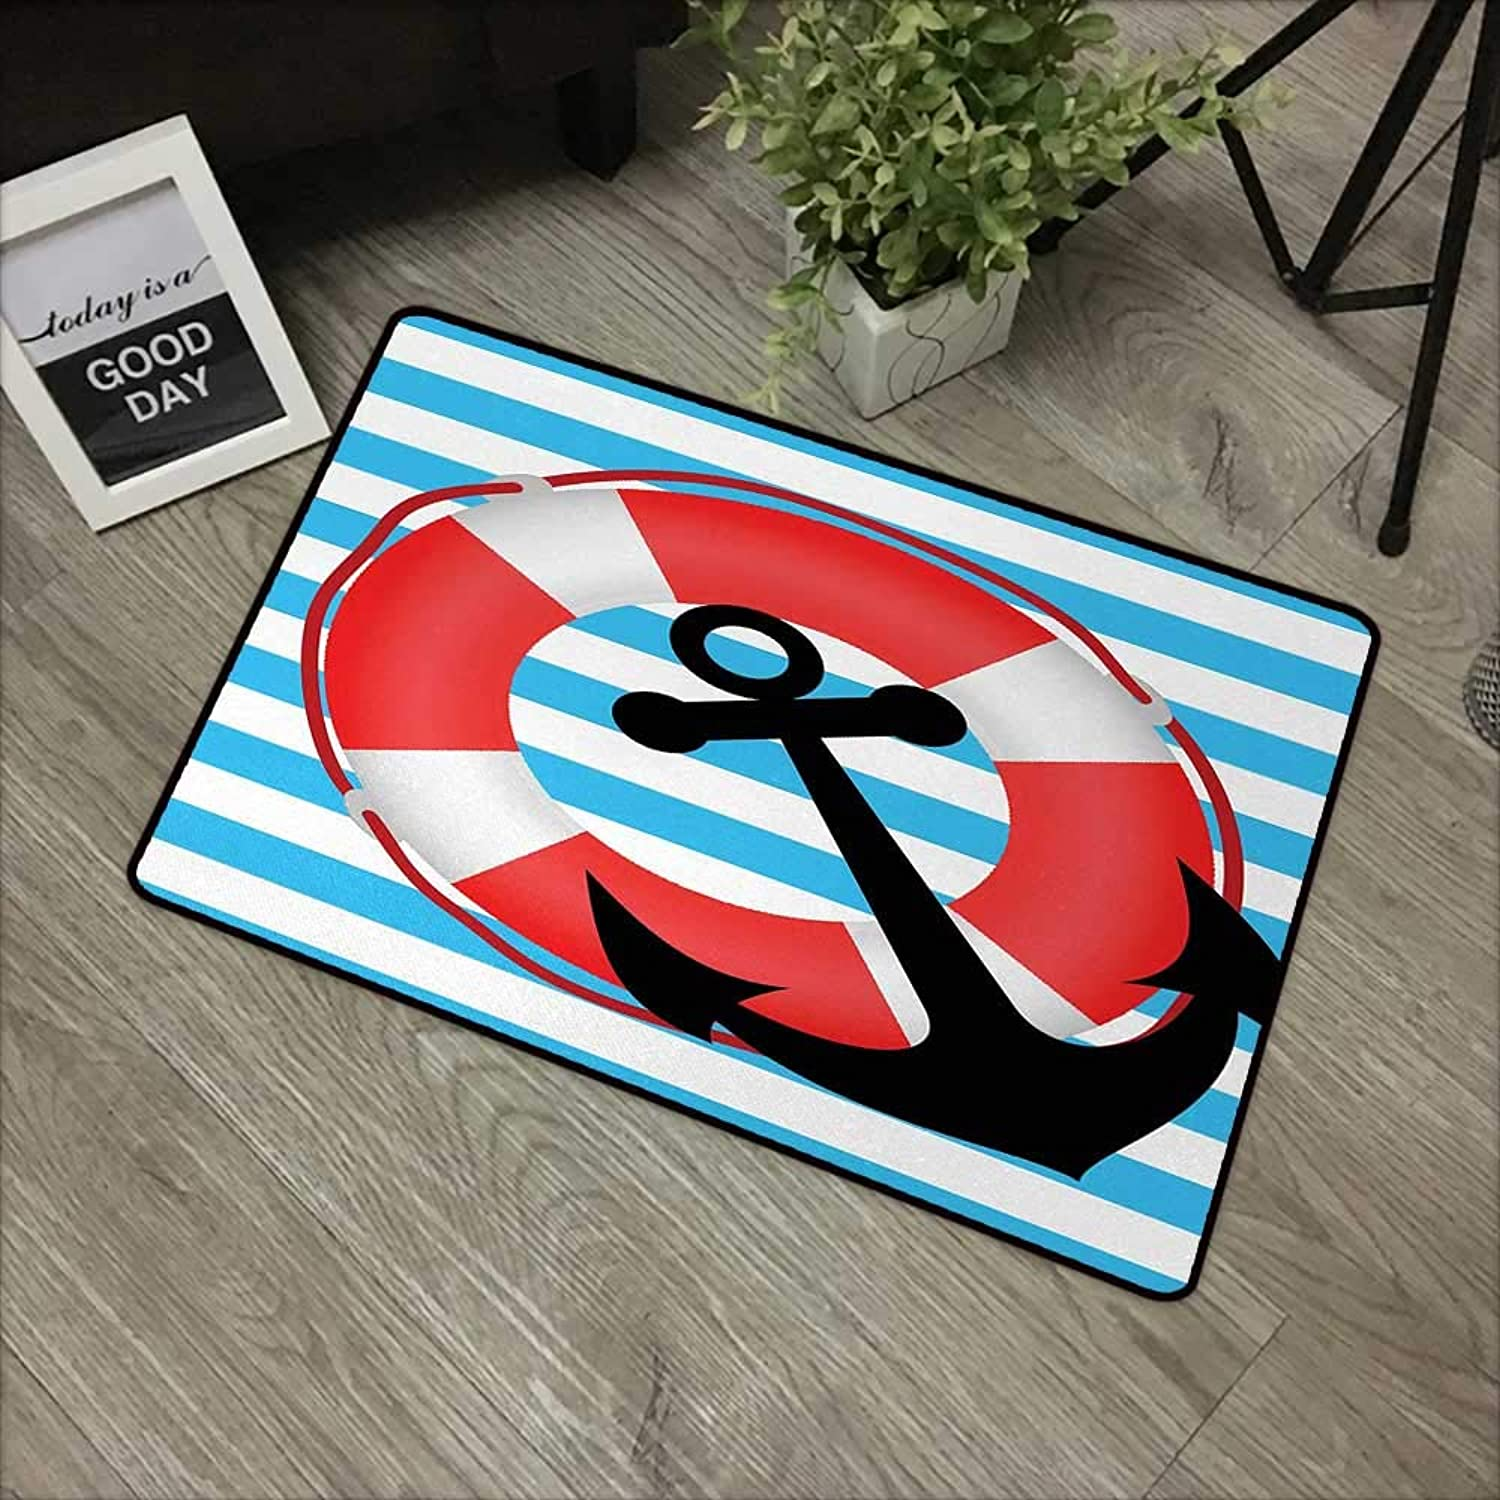 Restaurant mat W35 x L59 INCH Anchor,bluee Striped Backdrop with Lifebuoy and Anchor Aboard Travel Predection,Sky bluee Red Black Non-Slip, with Non-Slip Backing,Non-Slip Door Mat Carpet